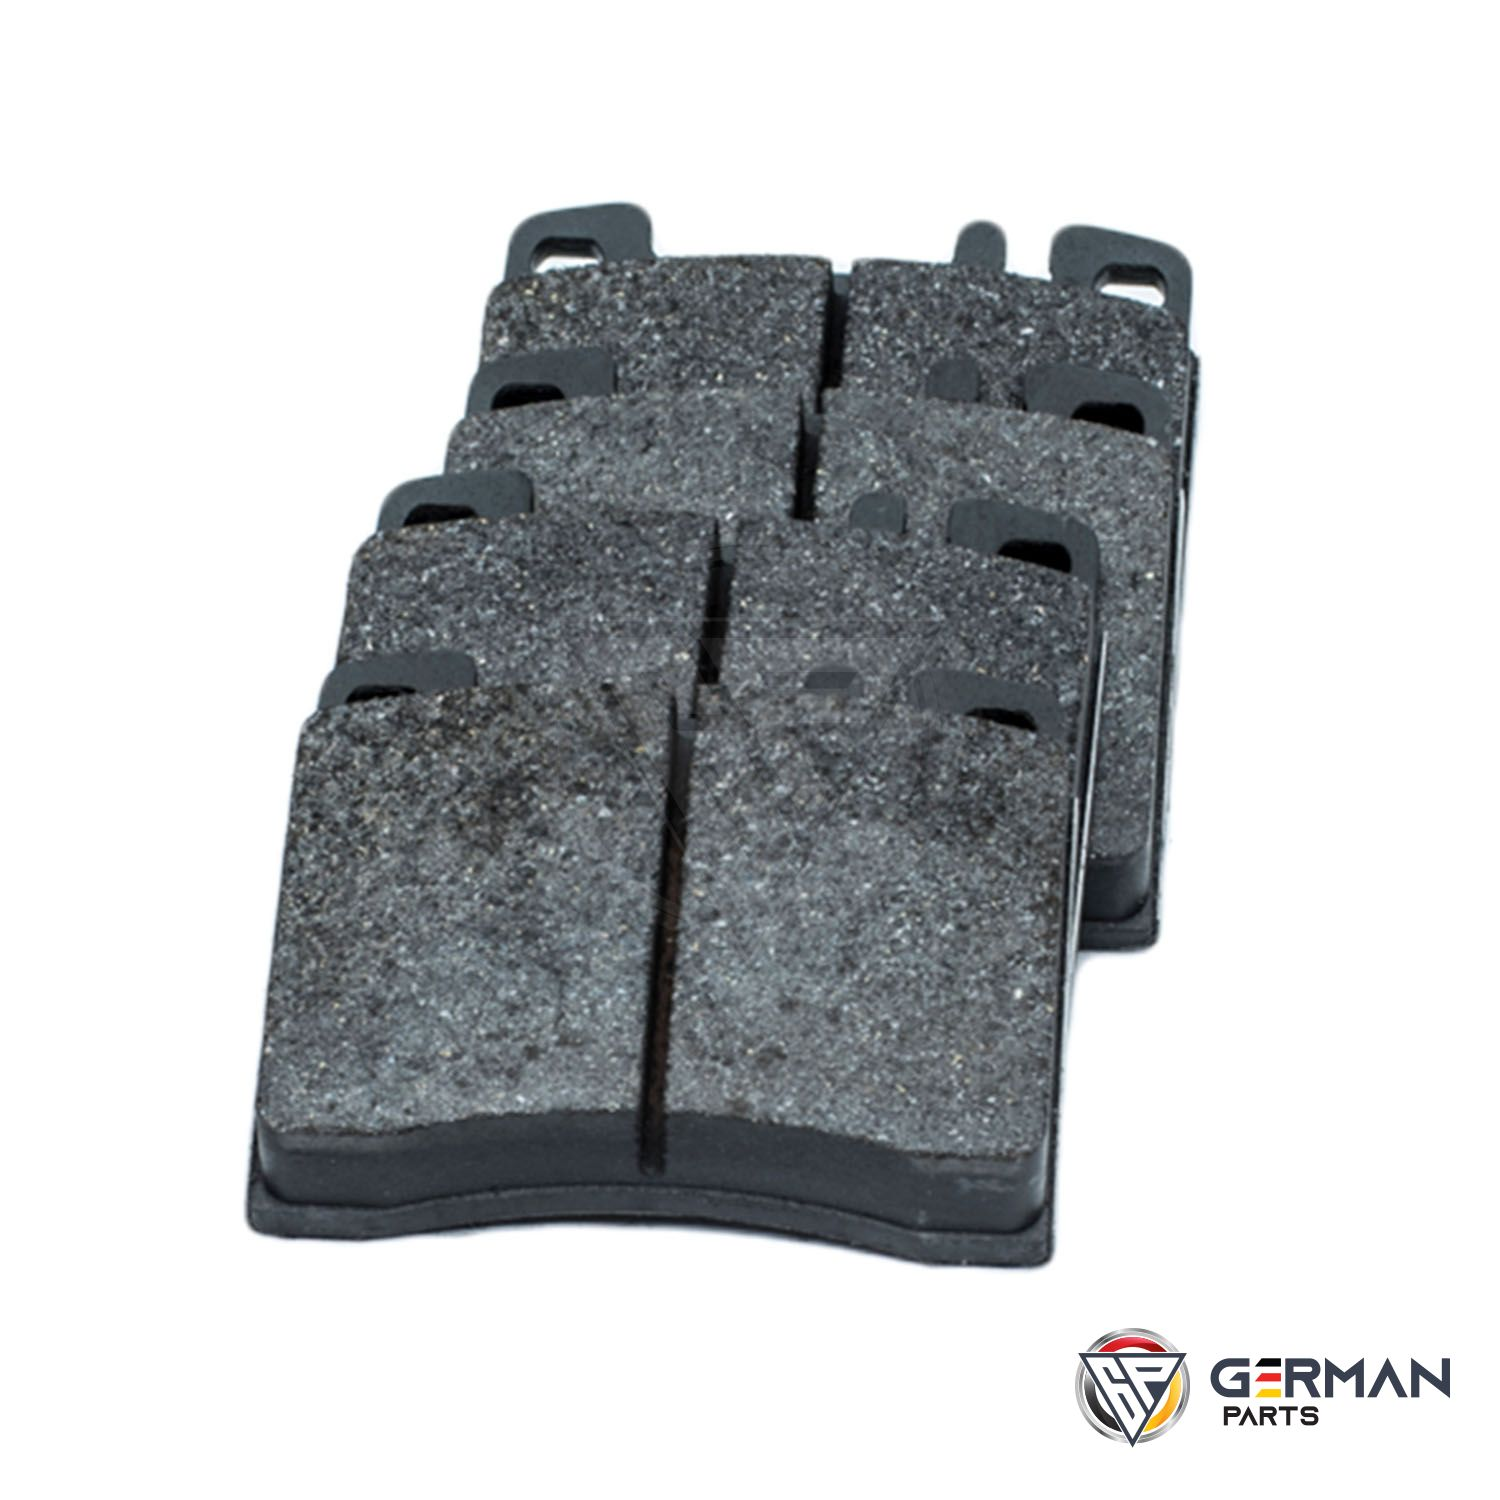 Buy Genuine Mercedes Benz Front Brake Pad Set 0024200320 - German Parts